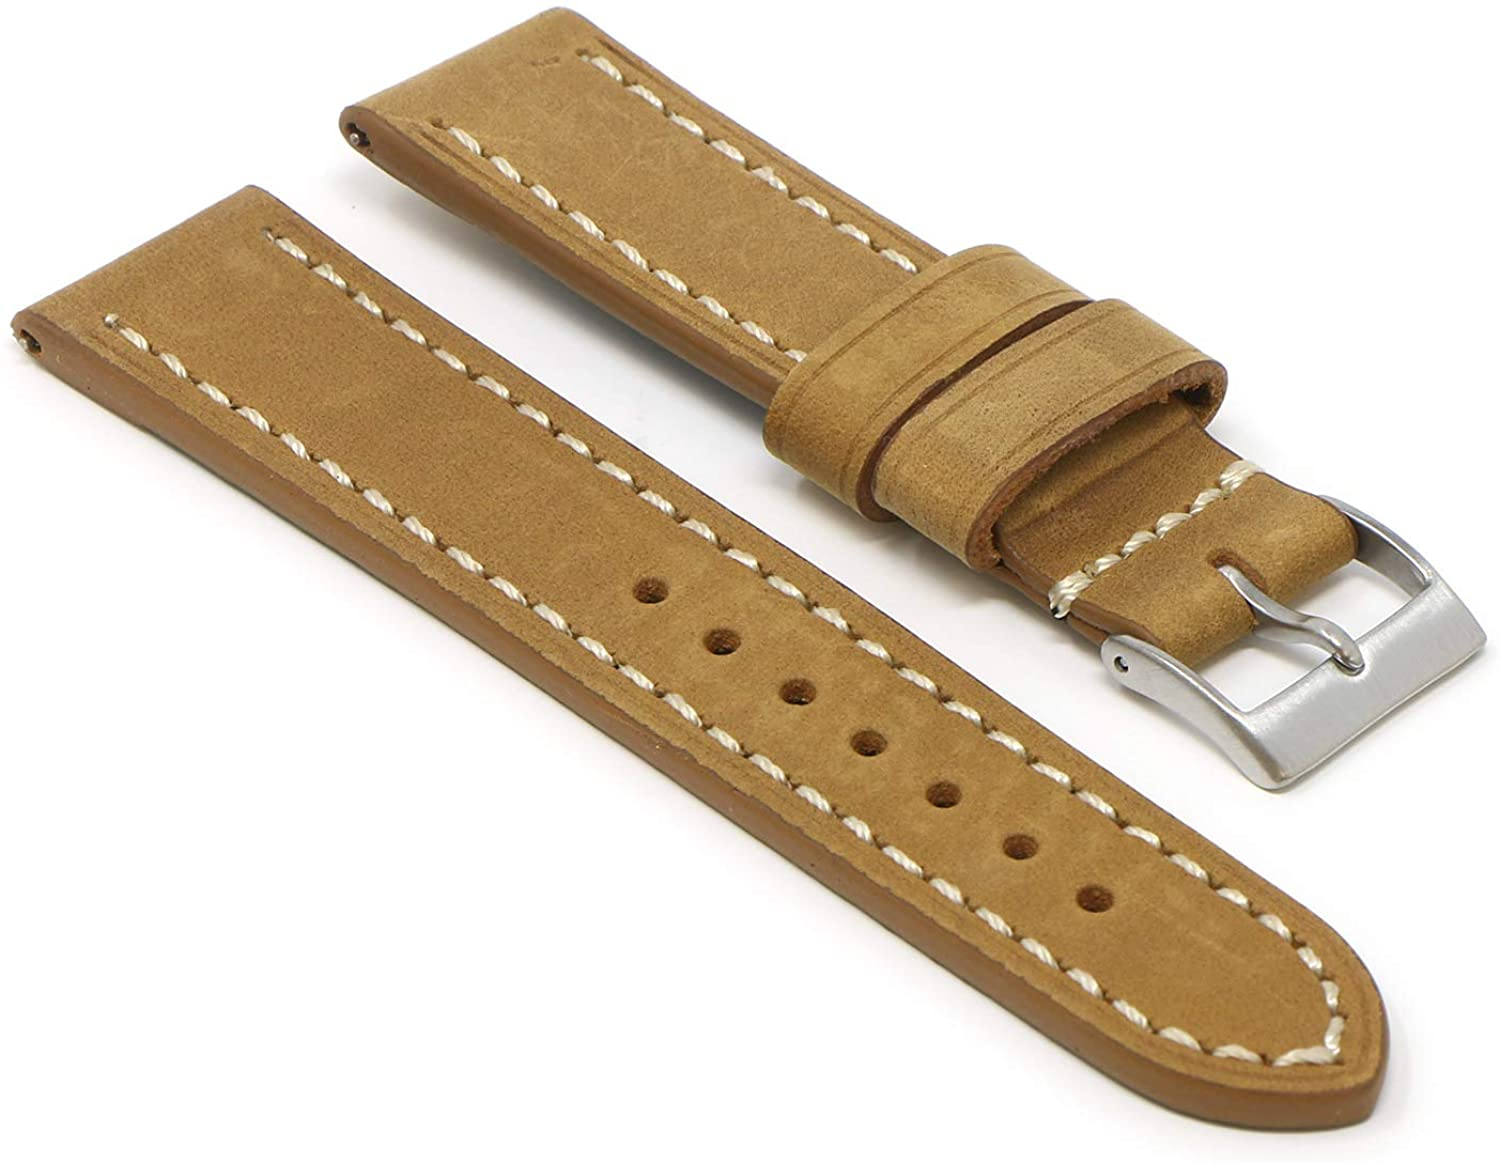 StrapsCo Vintage Leather Quick Release Watch Band Strap - Choose Your Color/Length - 16mm 18mm 19mm 20mm 21mm 22mm 24mm